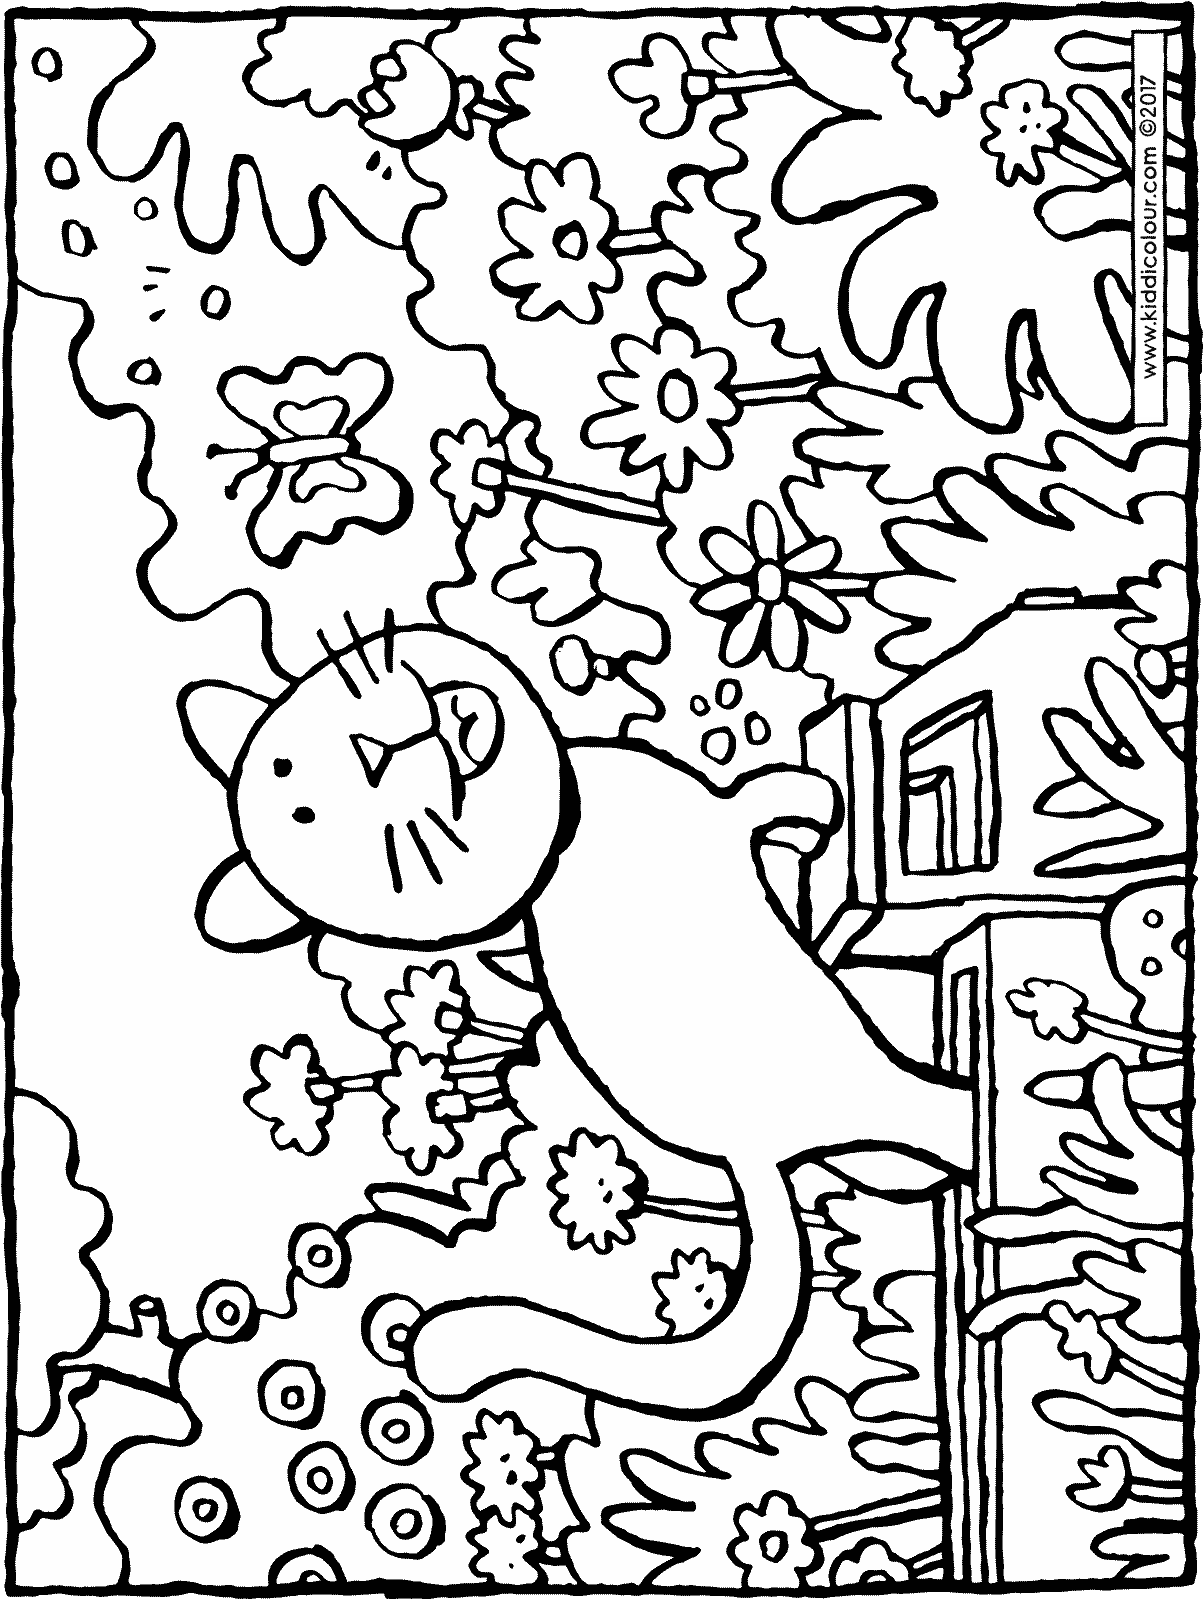 cat with butterfly colouring page drawing picture 01H